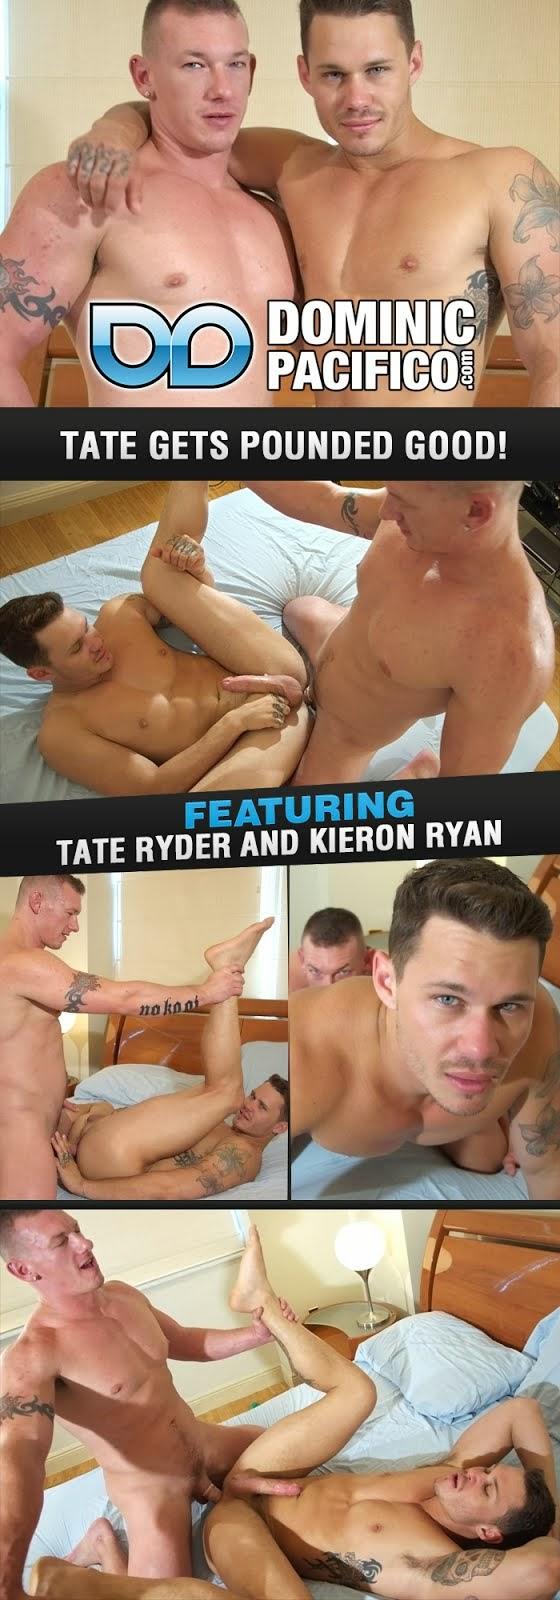 Tate gets Pounded Good